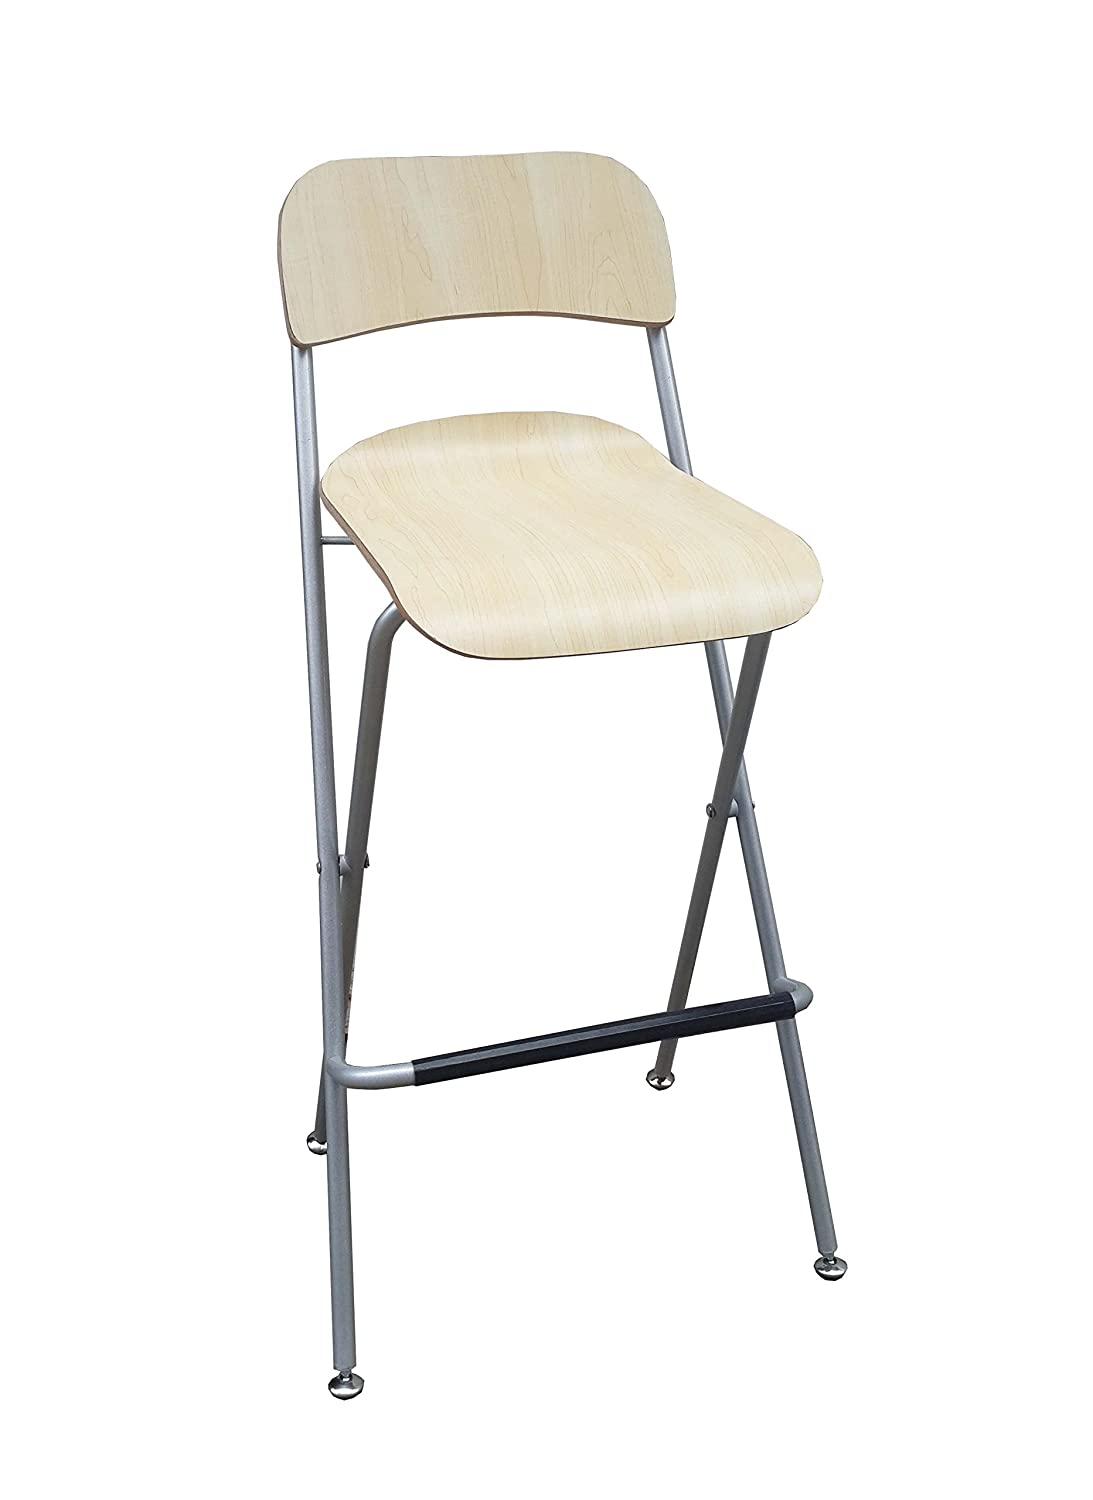 amazoncom fixture displays folding high chair bar stool folding wood metal chair twopack camping chairs grocery u0026 gourmet food